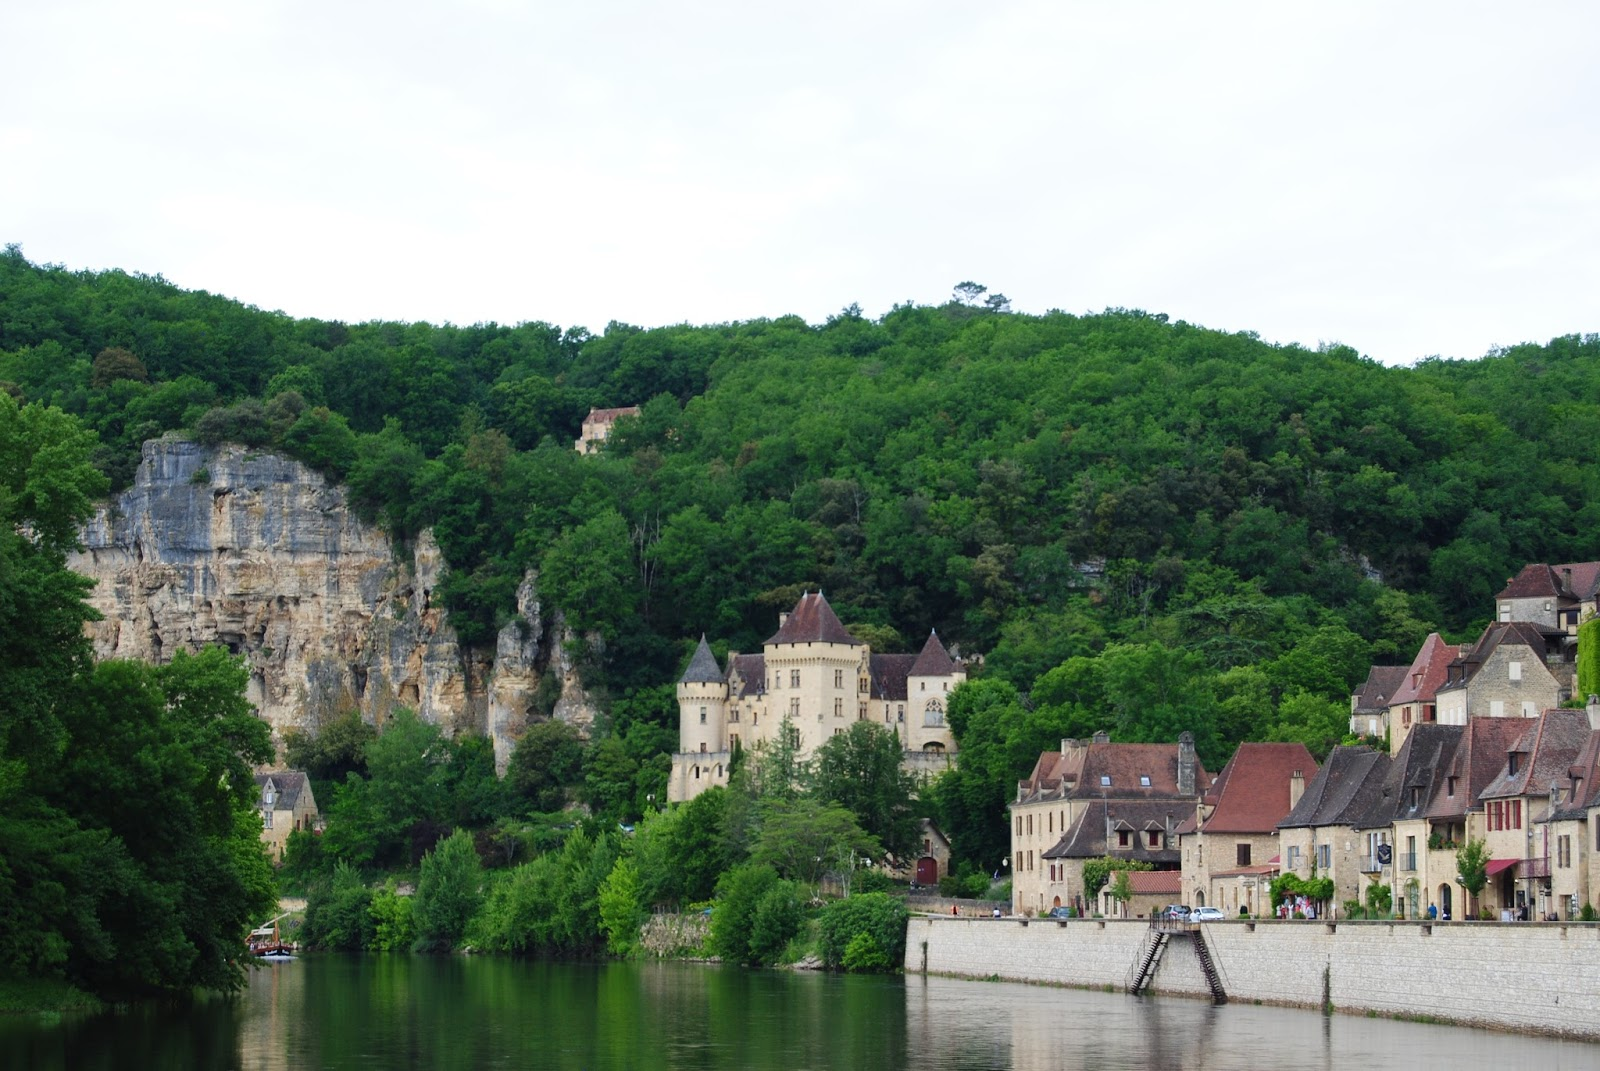 La Roque-Gageac harbour and chateau